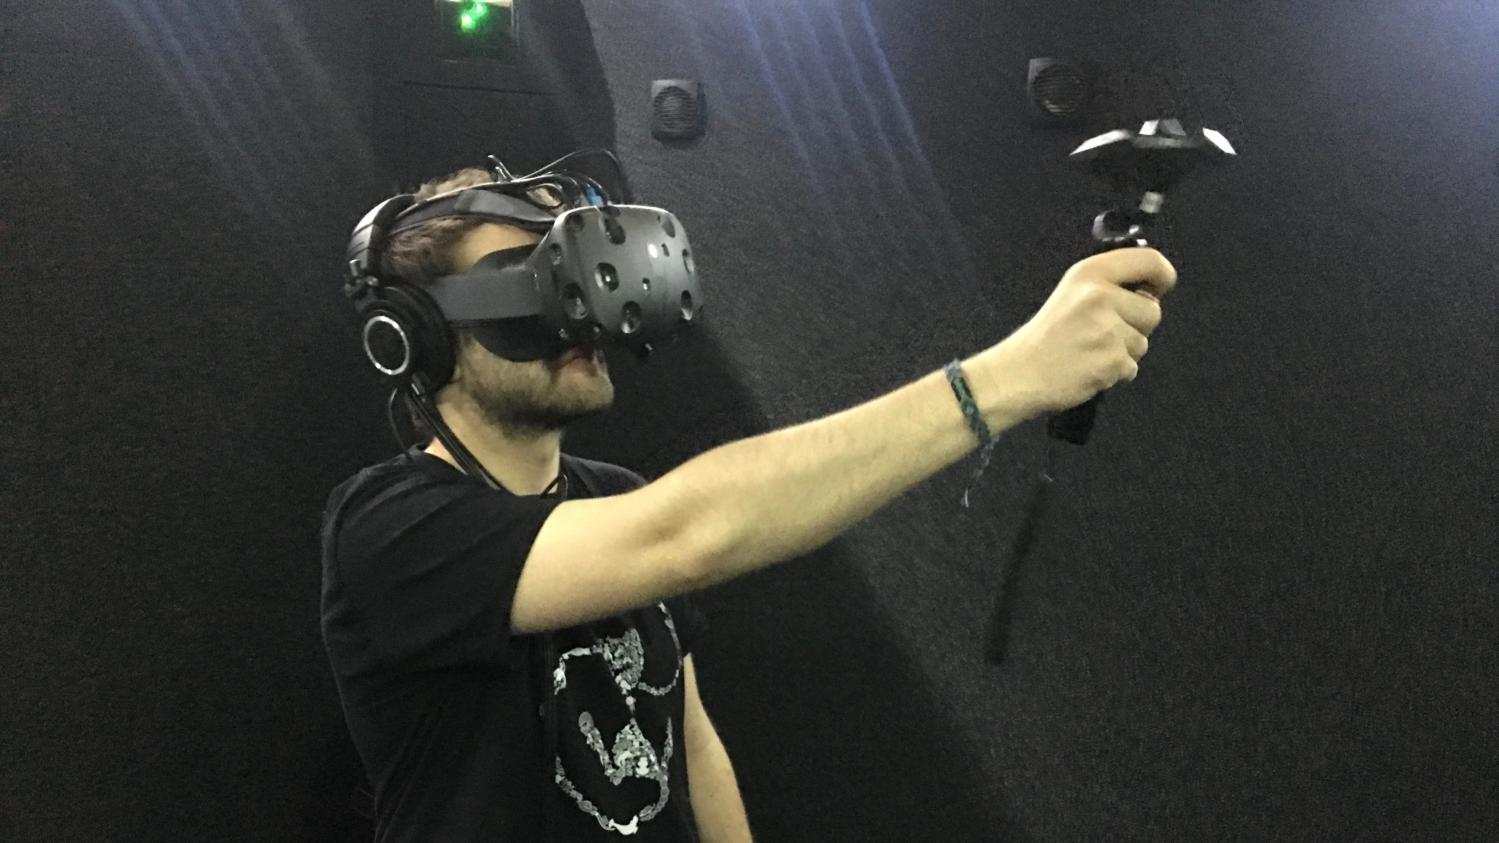 Salon Réalité Virtuelle Paris La Réalité Virtuelle En Vedette Au Salon Paris Games Week